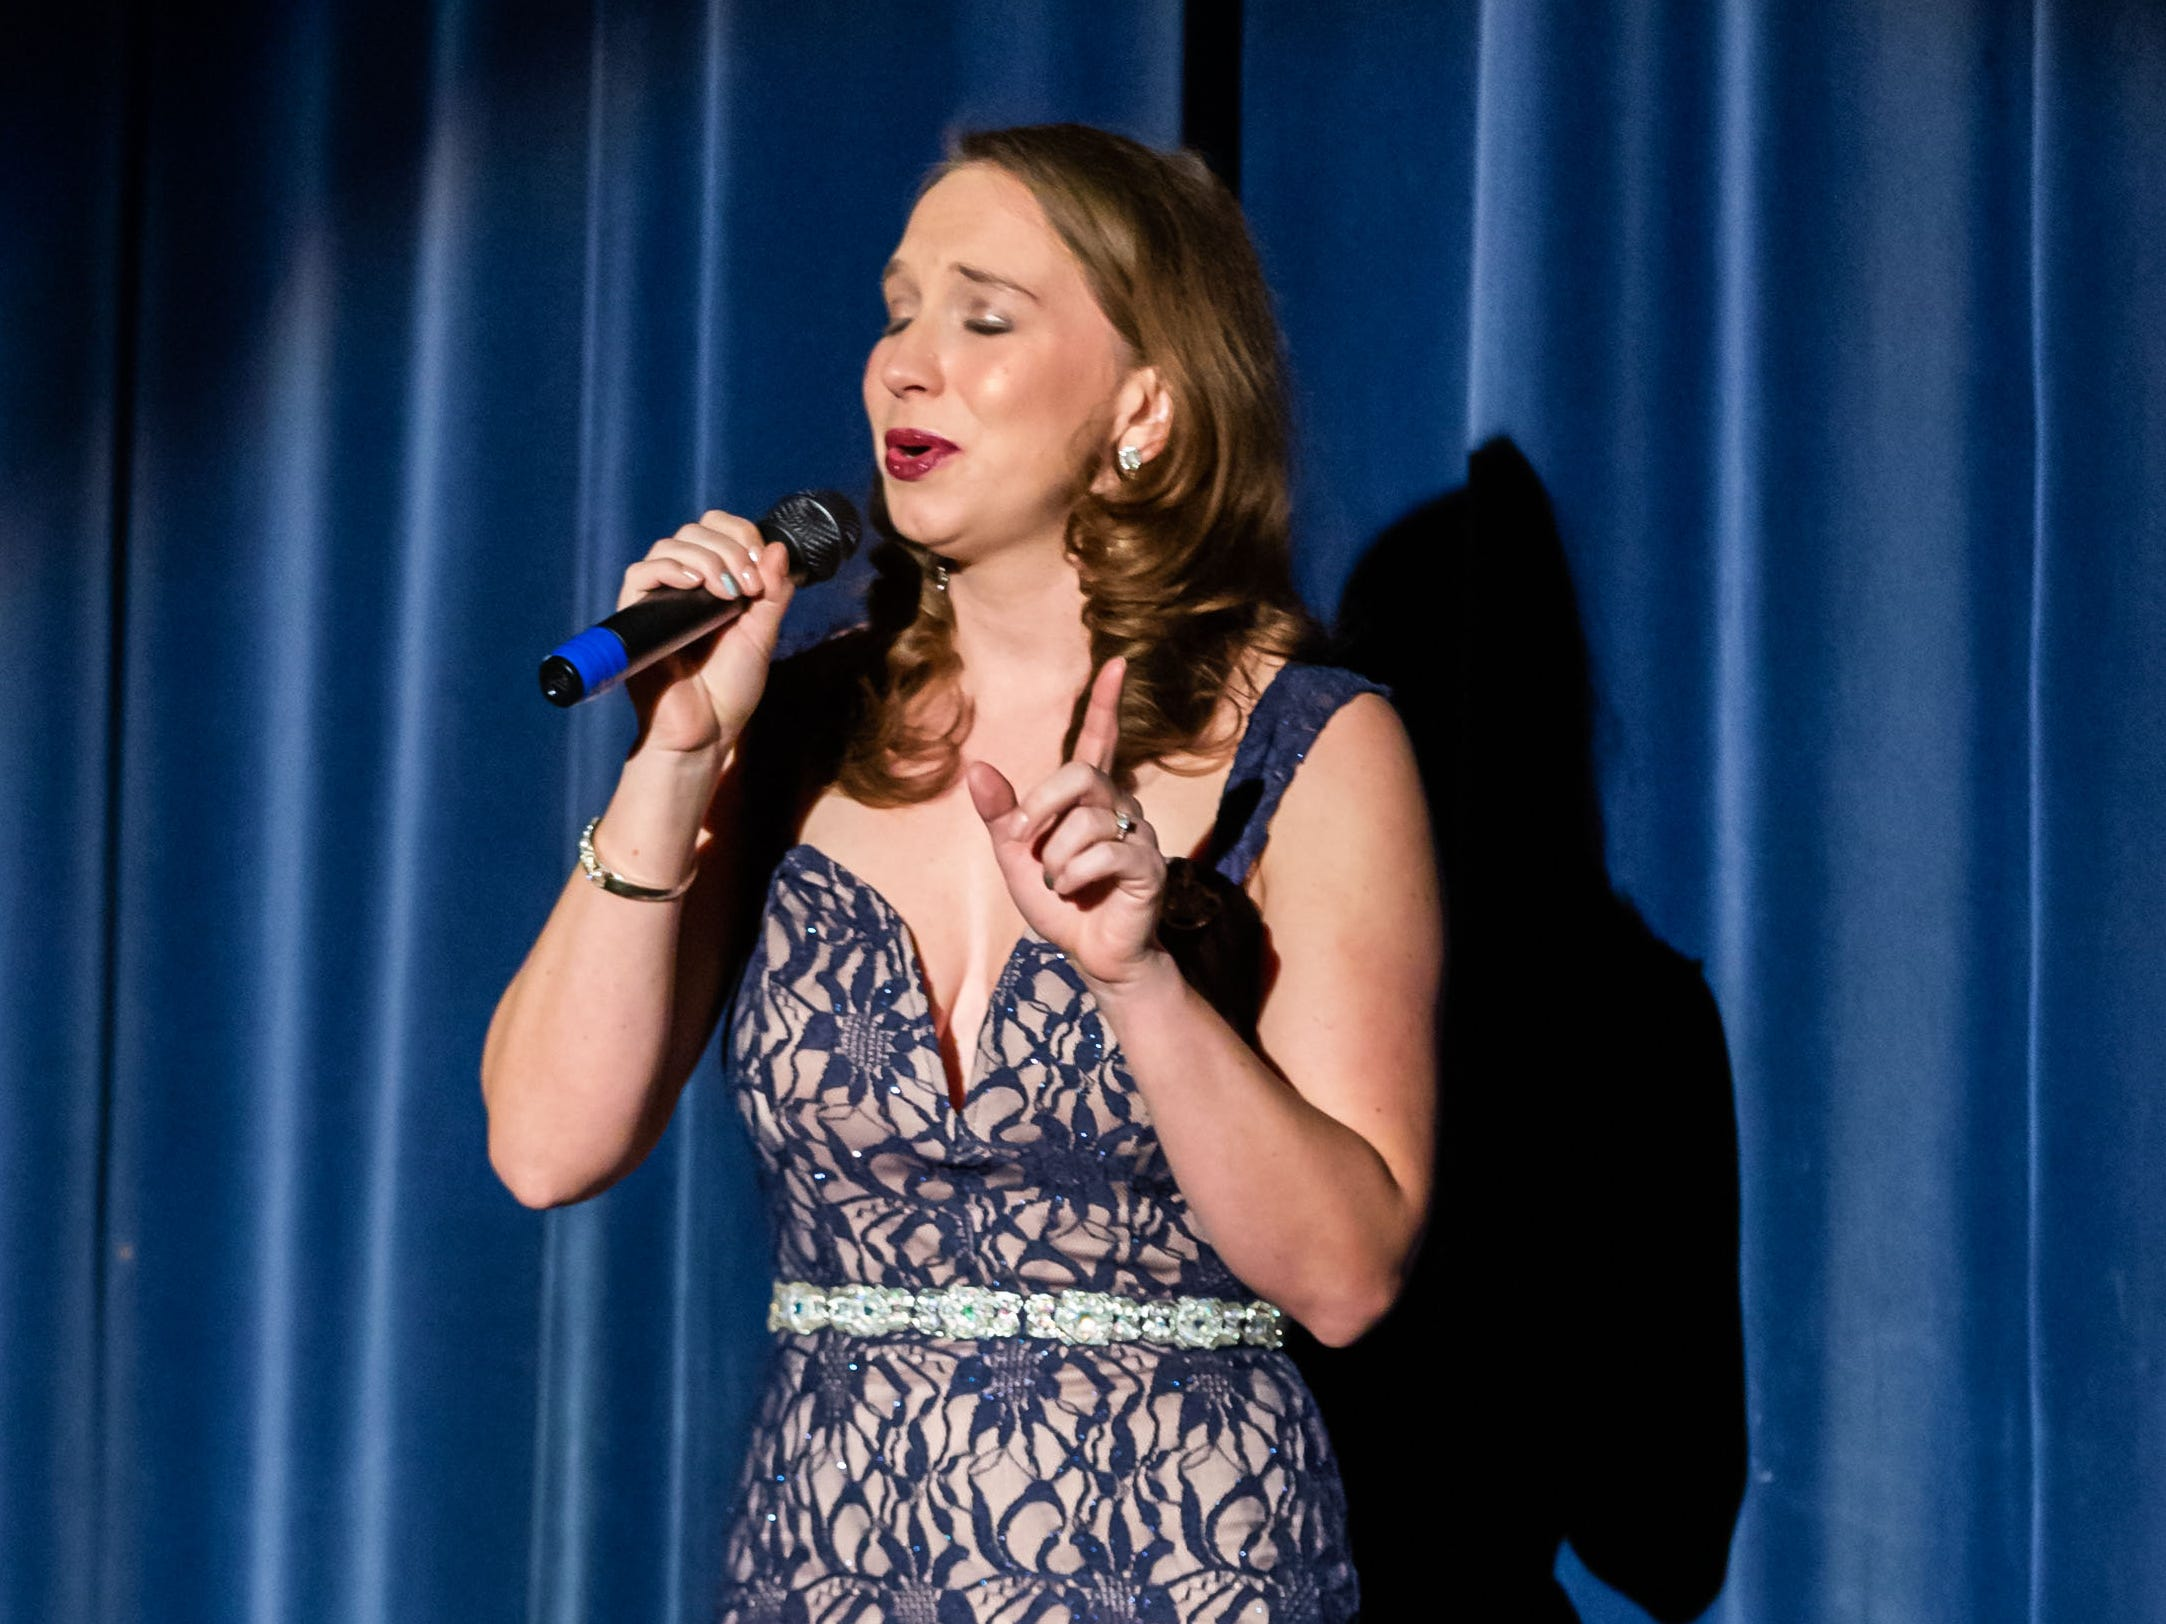 Miss St. Francis 2008, Elyse Wojciechowski-Scheeler, performs a song during the 55th annual Miss St. Francis Scholarship Competition at St. Thomas More High School on Saturday, Feb. 2, 2019.